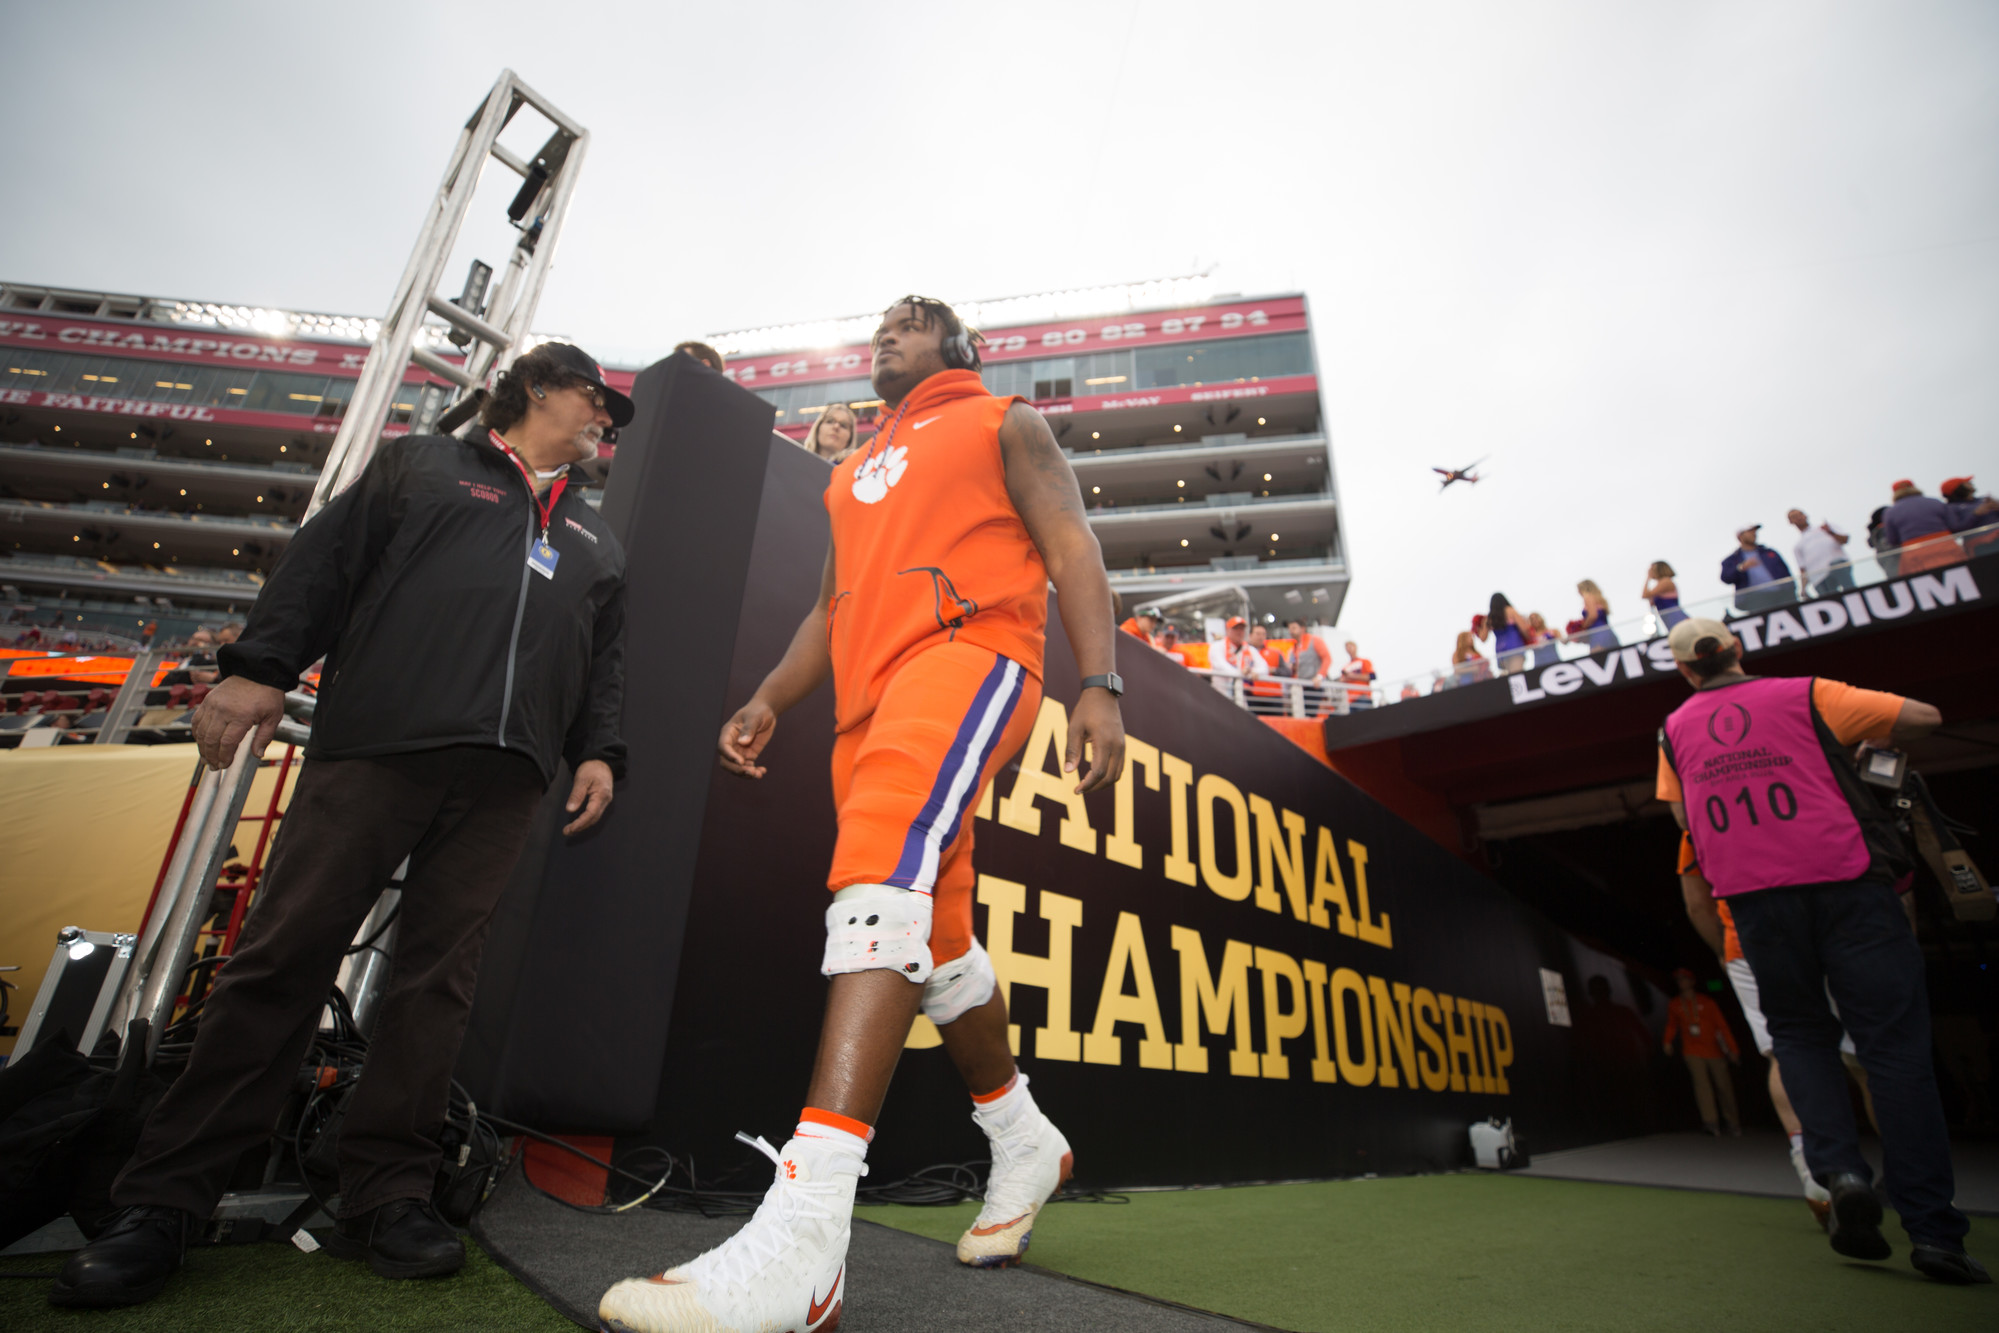 Clemson players enter the field at Levi's Stadium in Santa Clara, California, on Monday, Jan. 7 before the CFP National Championship game between Clemson and Alabama.